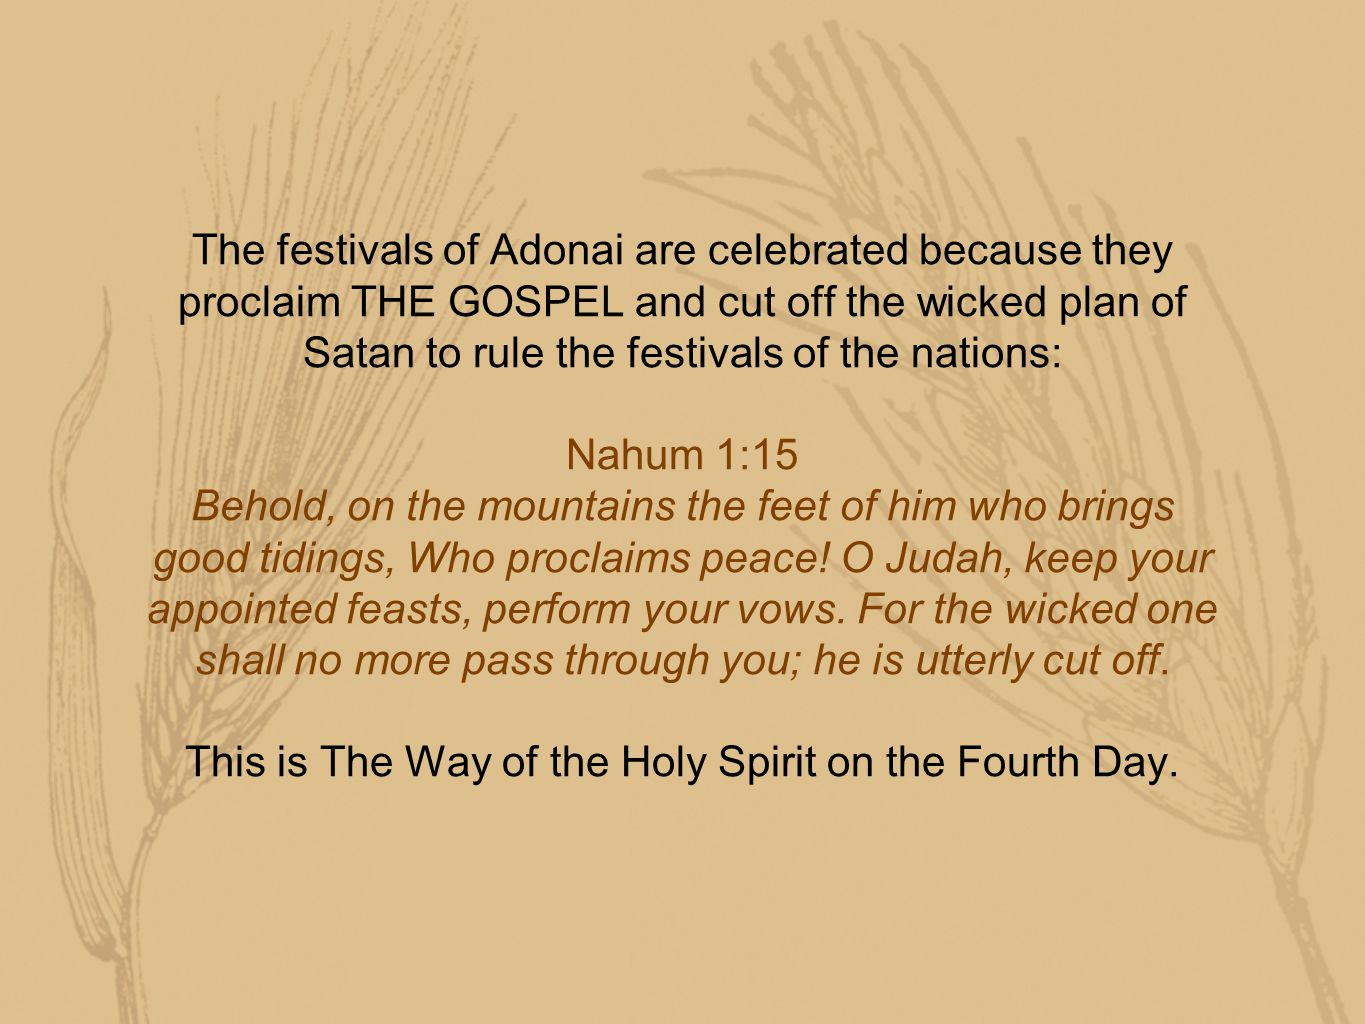 The festivals of Adonai are celebrated because they proclaim THE GOSPEL and cut off the wicked plan of Satan to rule the festivals of the nations: Nahum 1:15 Behold, on the mountains the feet of him who brings good tidings, Who proclaims peace.